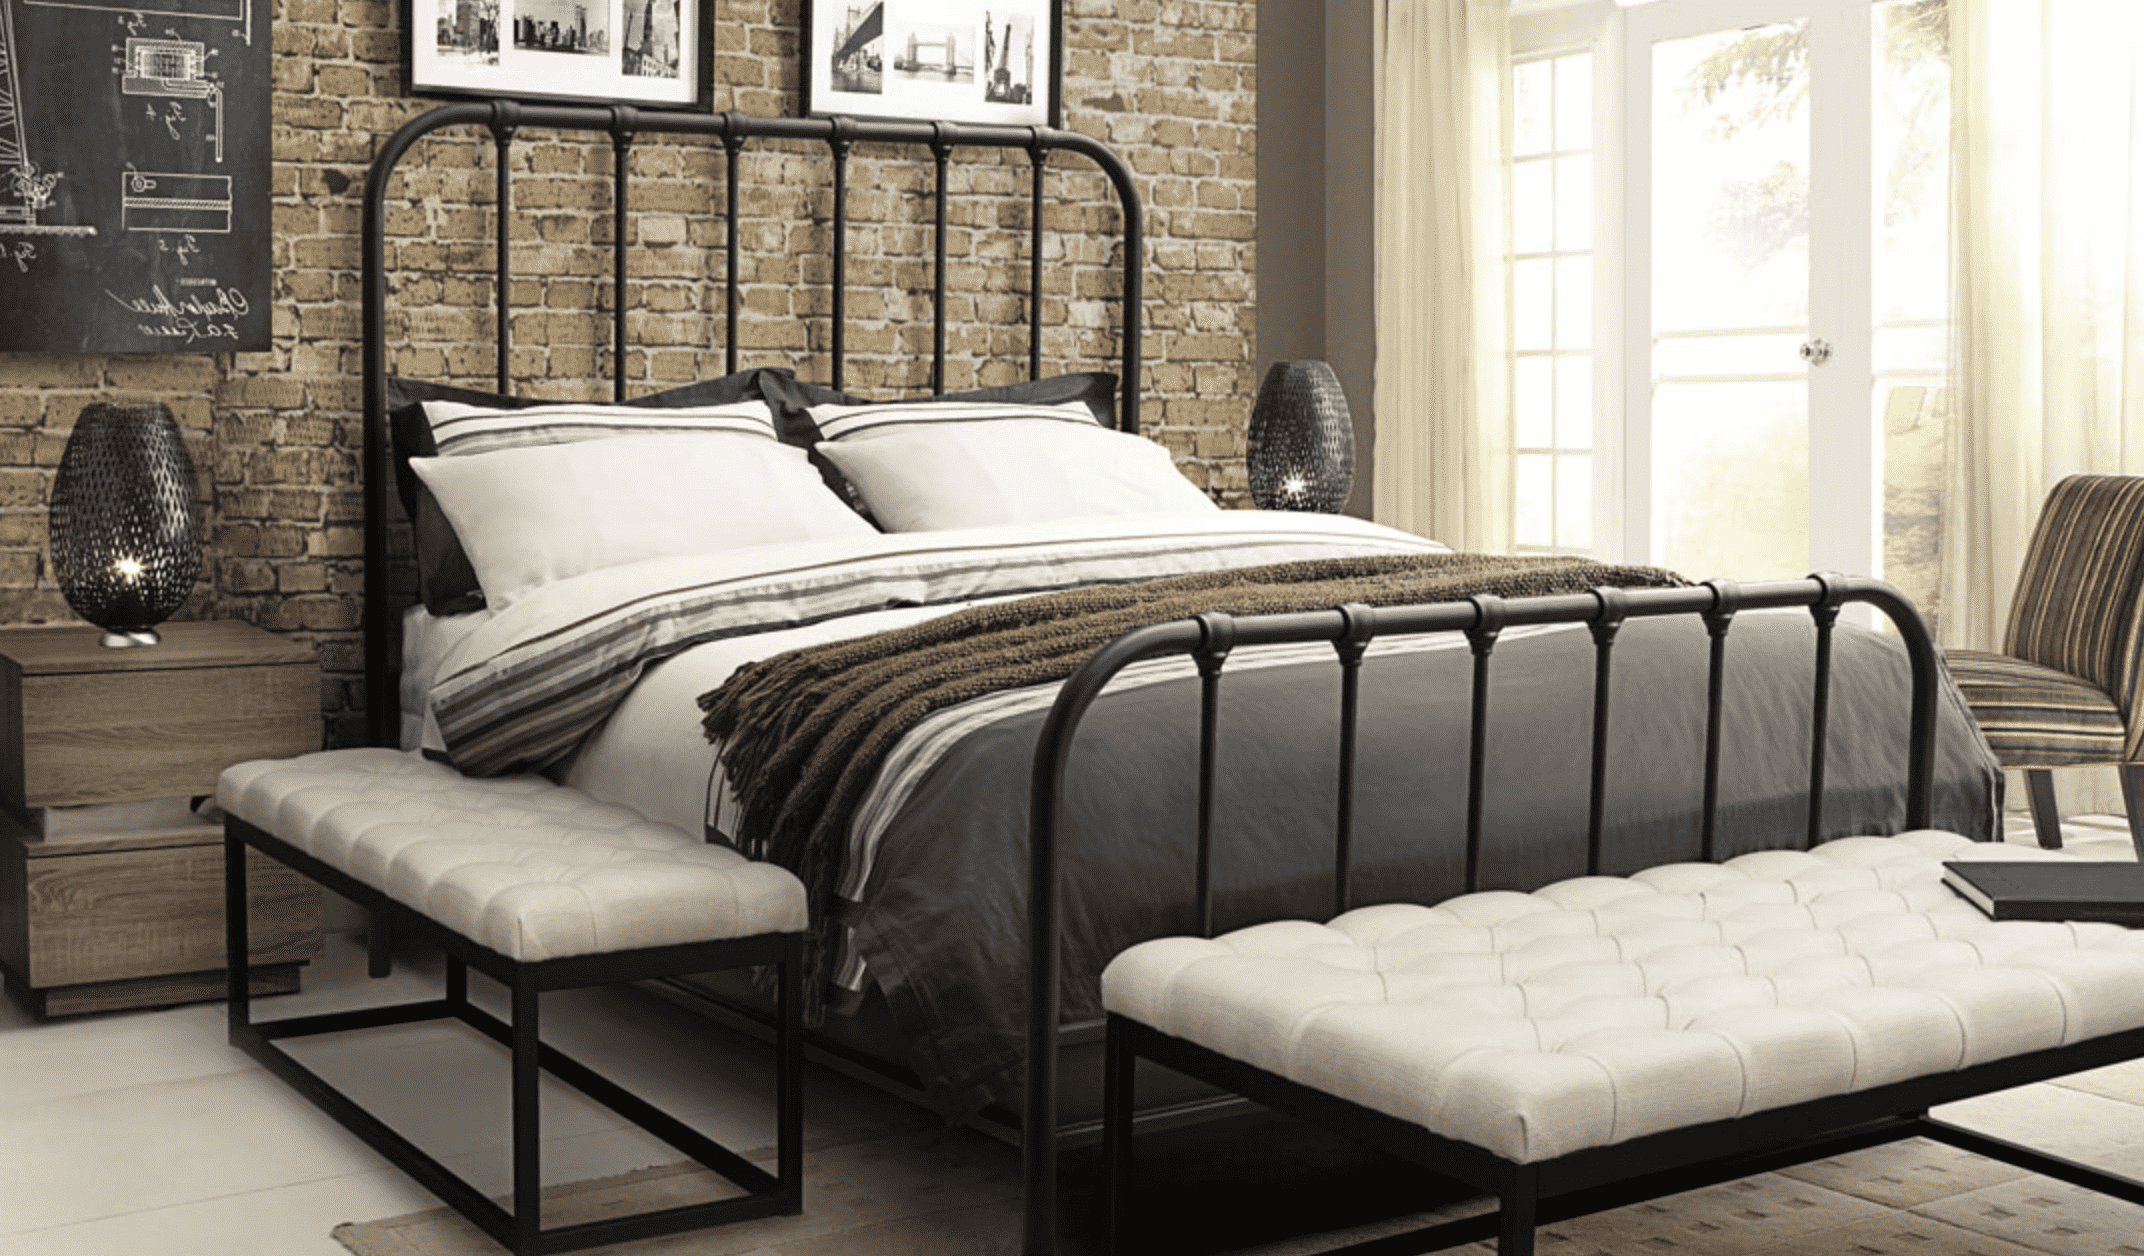 Gastown Rust Brown Metal 64 Queen Bed Exclusive At Hunters,Lighting Ideas Over Dining Room Table